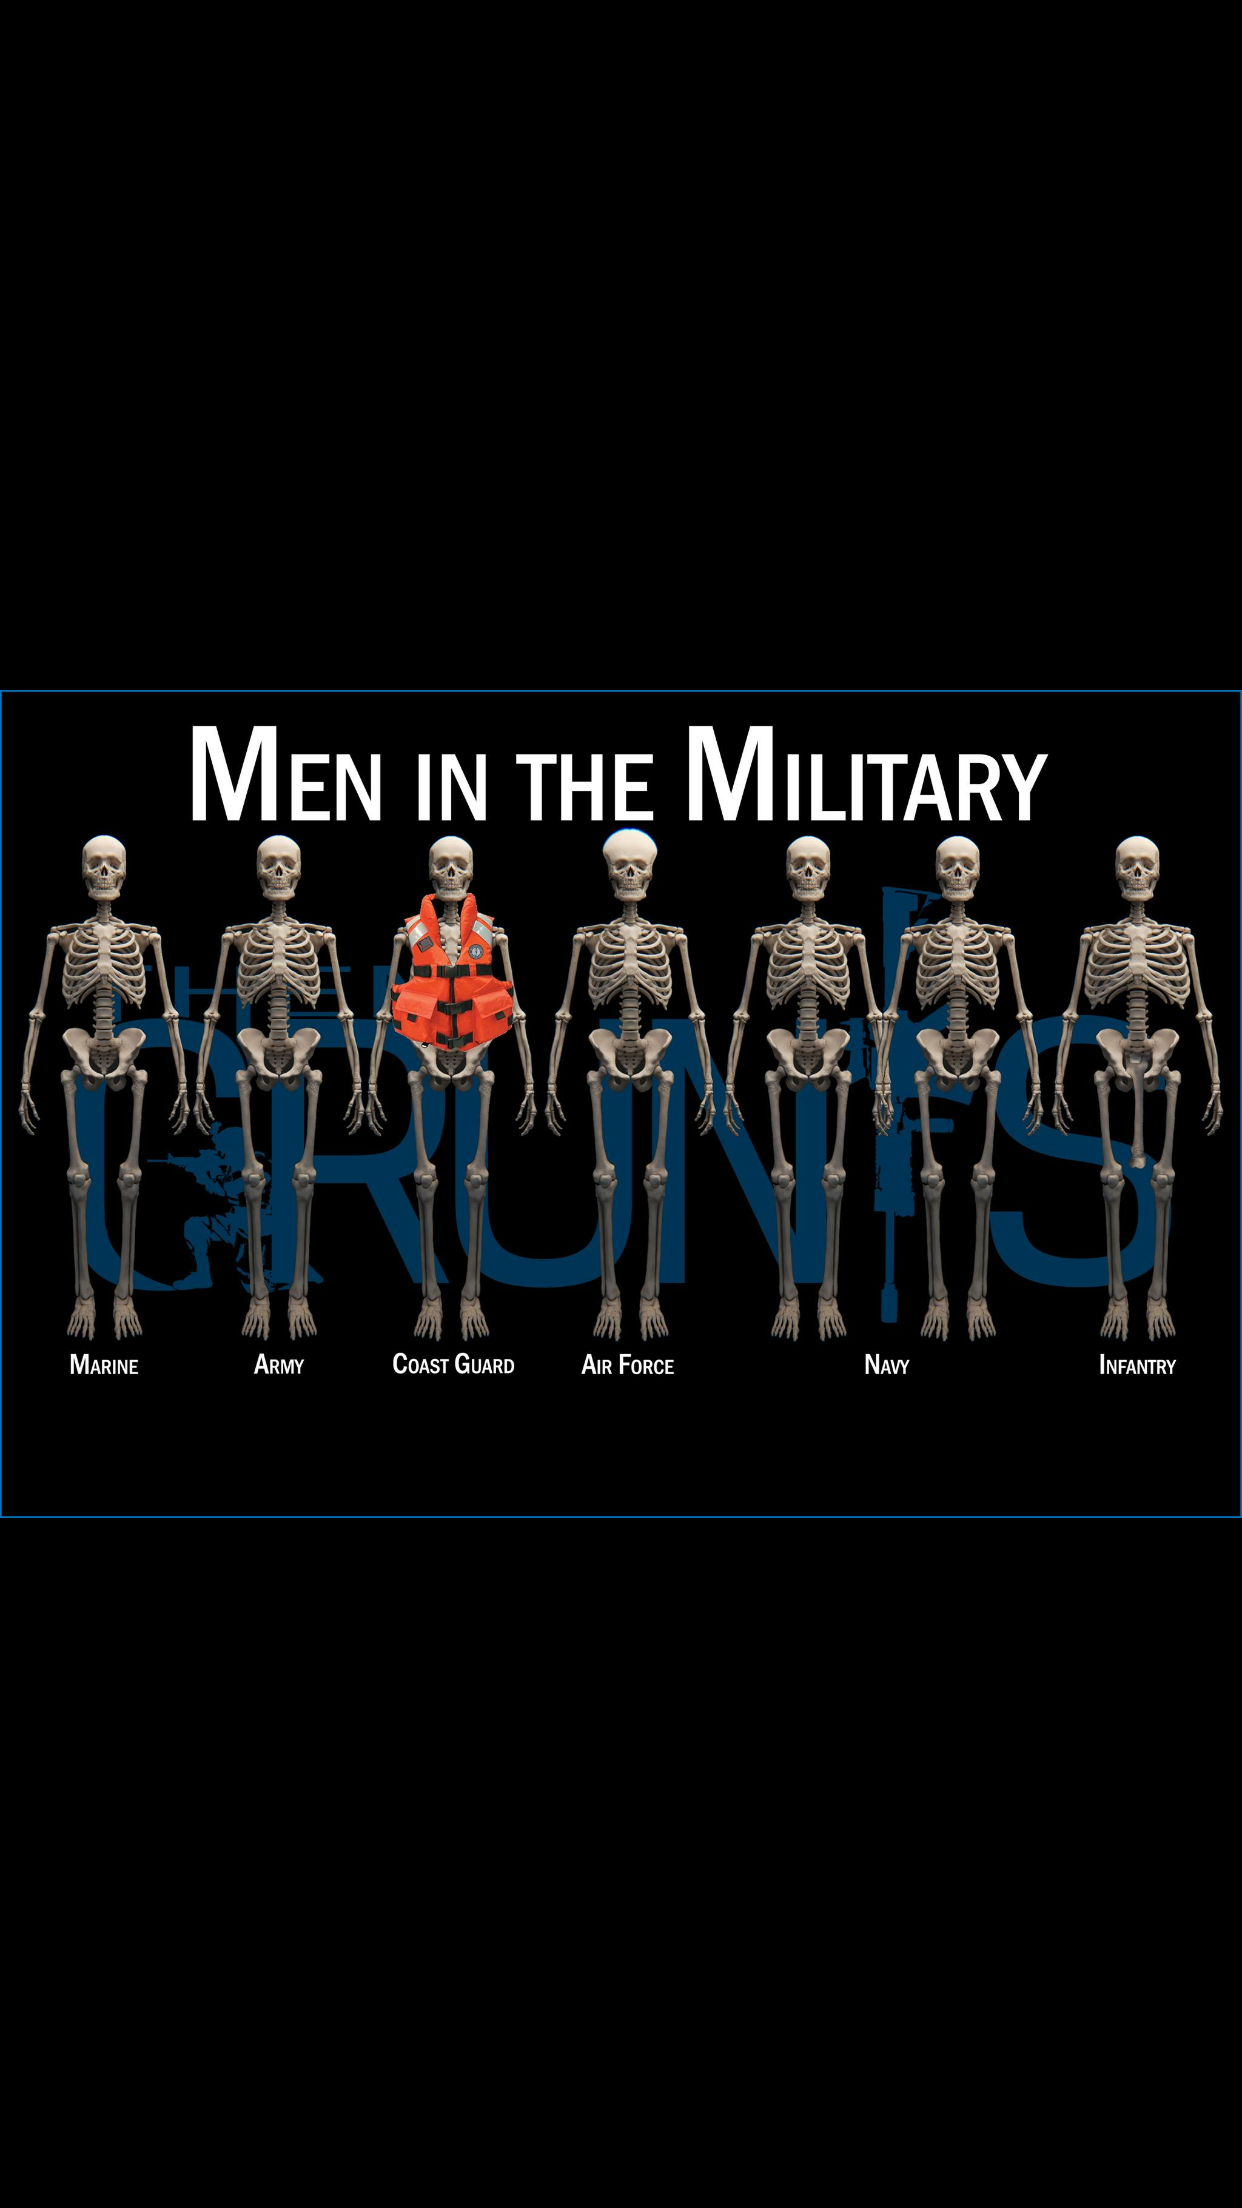 Pin By Arvid Van Zuijlen On Military Memes Army Humor Military Life Quotes Military Memes